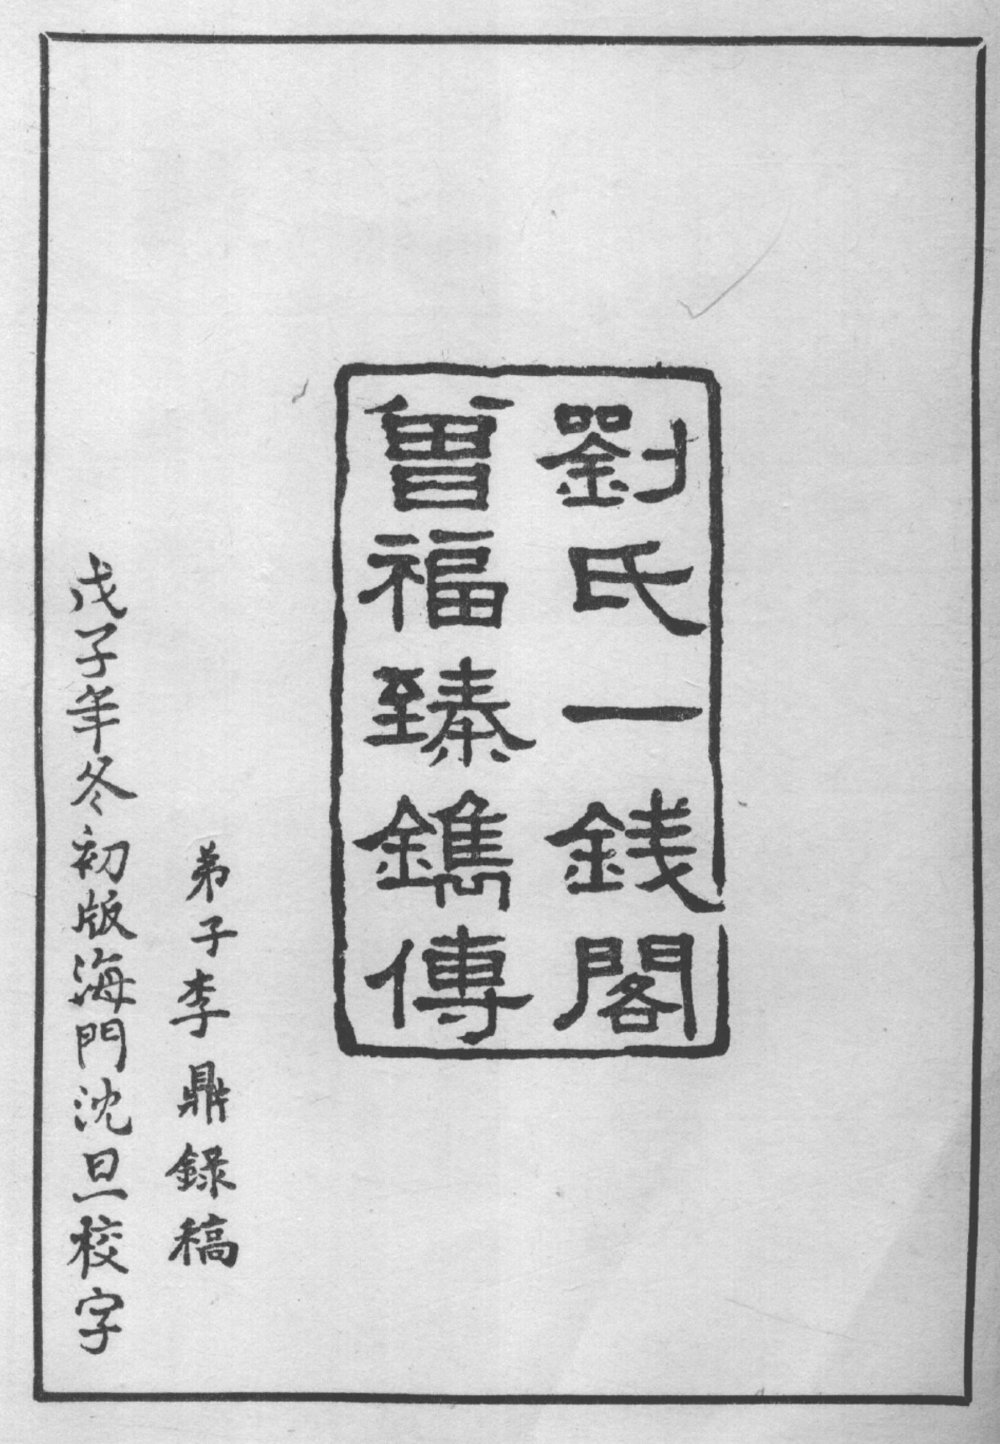 Copyright page B, showing the publisher information 'Liu Shi Yi Qian Ge Zeng Fu Zhen Juan Zhuan Chuan 劉氏一錢閣曾福臻鐫傳' (Engraved and Issued by Zeng Fuzhen at Liu's One-Coin Pavilion), and the information on the transcriber and the collator: 'Di Zi Li Ding Lu Gao 弟子李鼎録稿' (Transcribed by [Yang's] Student Li Ding) and 'Wu Zi Nian Dong Chu Ban Hai Men Shen Dan Jiao Zi 戊子年冬初版海門沈旦校字' (First Published in the Winter of 1948, Collated by Shen Dan of Haimen).